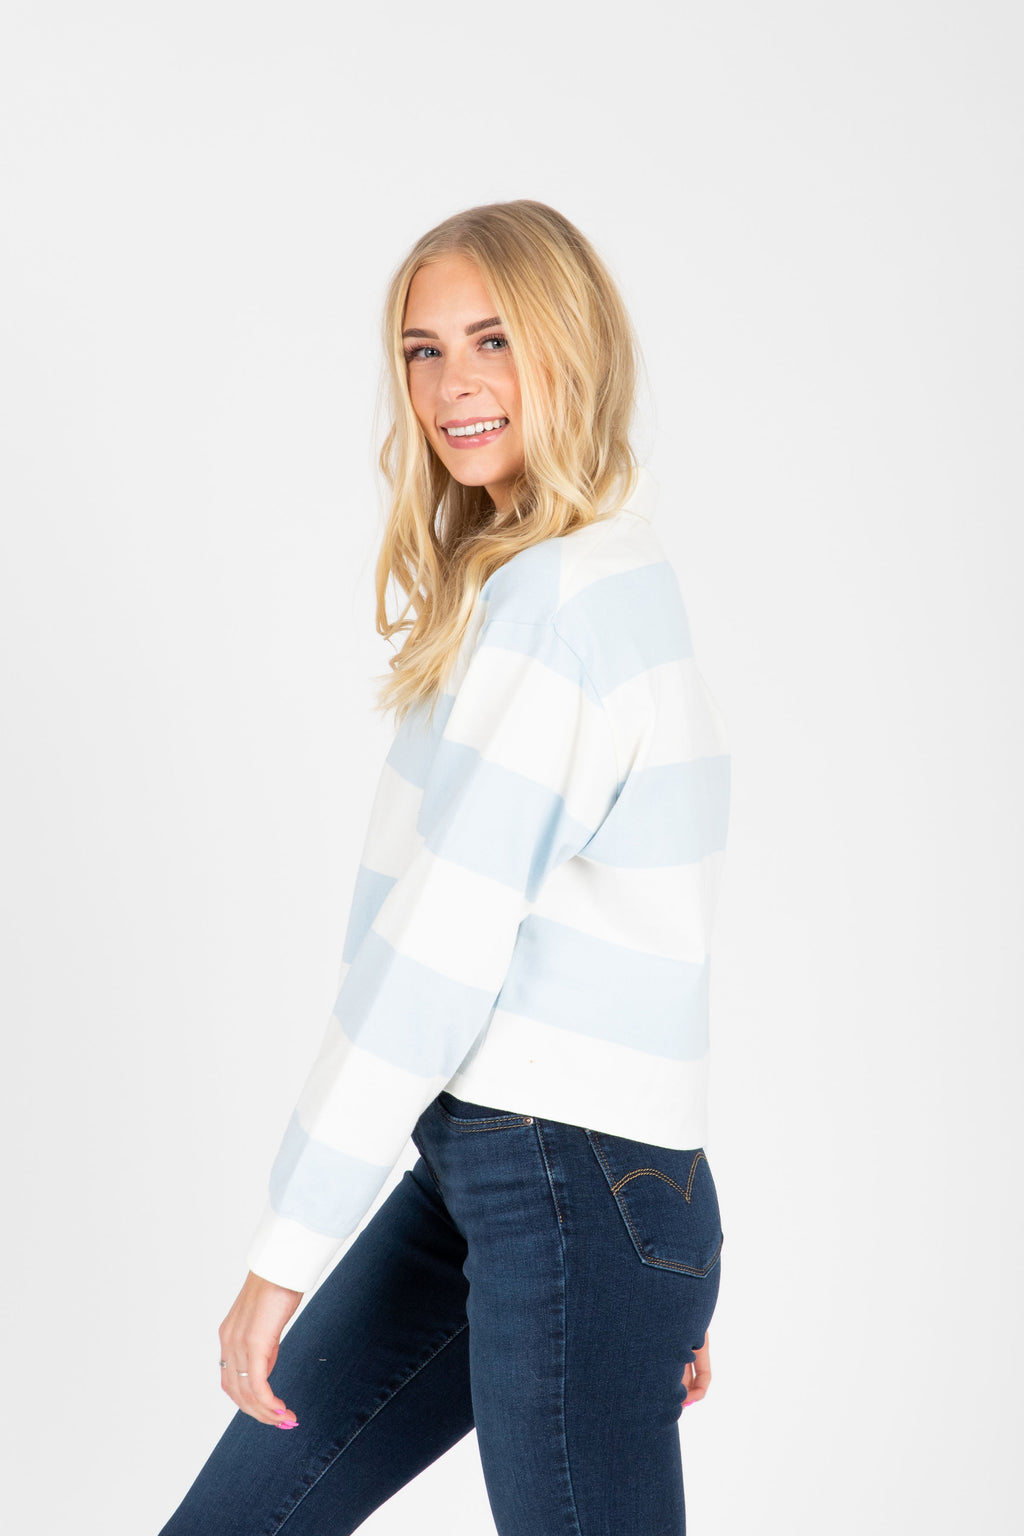 Levi's: Longsleeve Fashion Rugby Tee in Baby Blue + White Stripe, studio shoot; side view